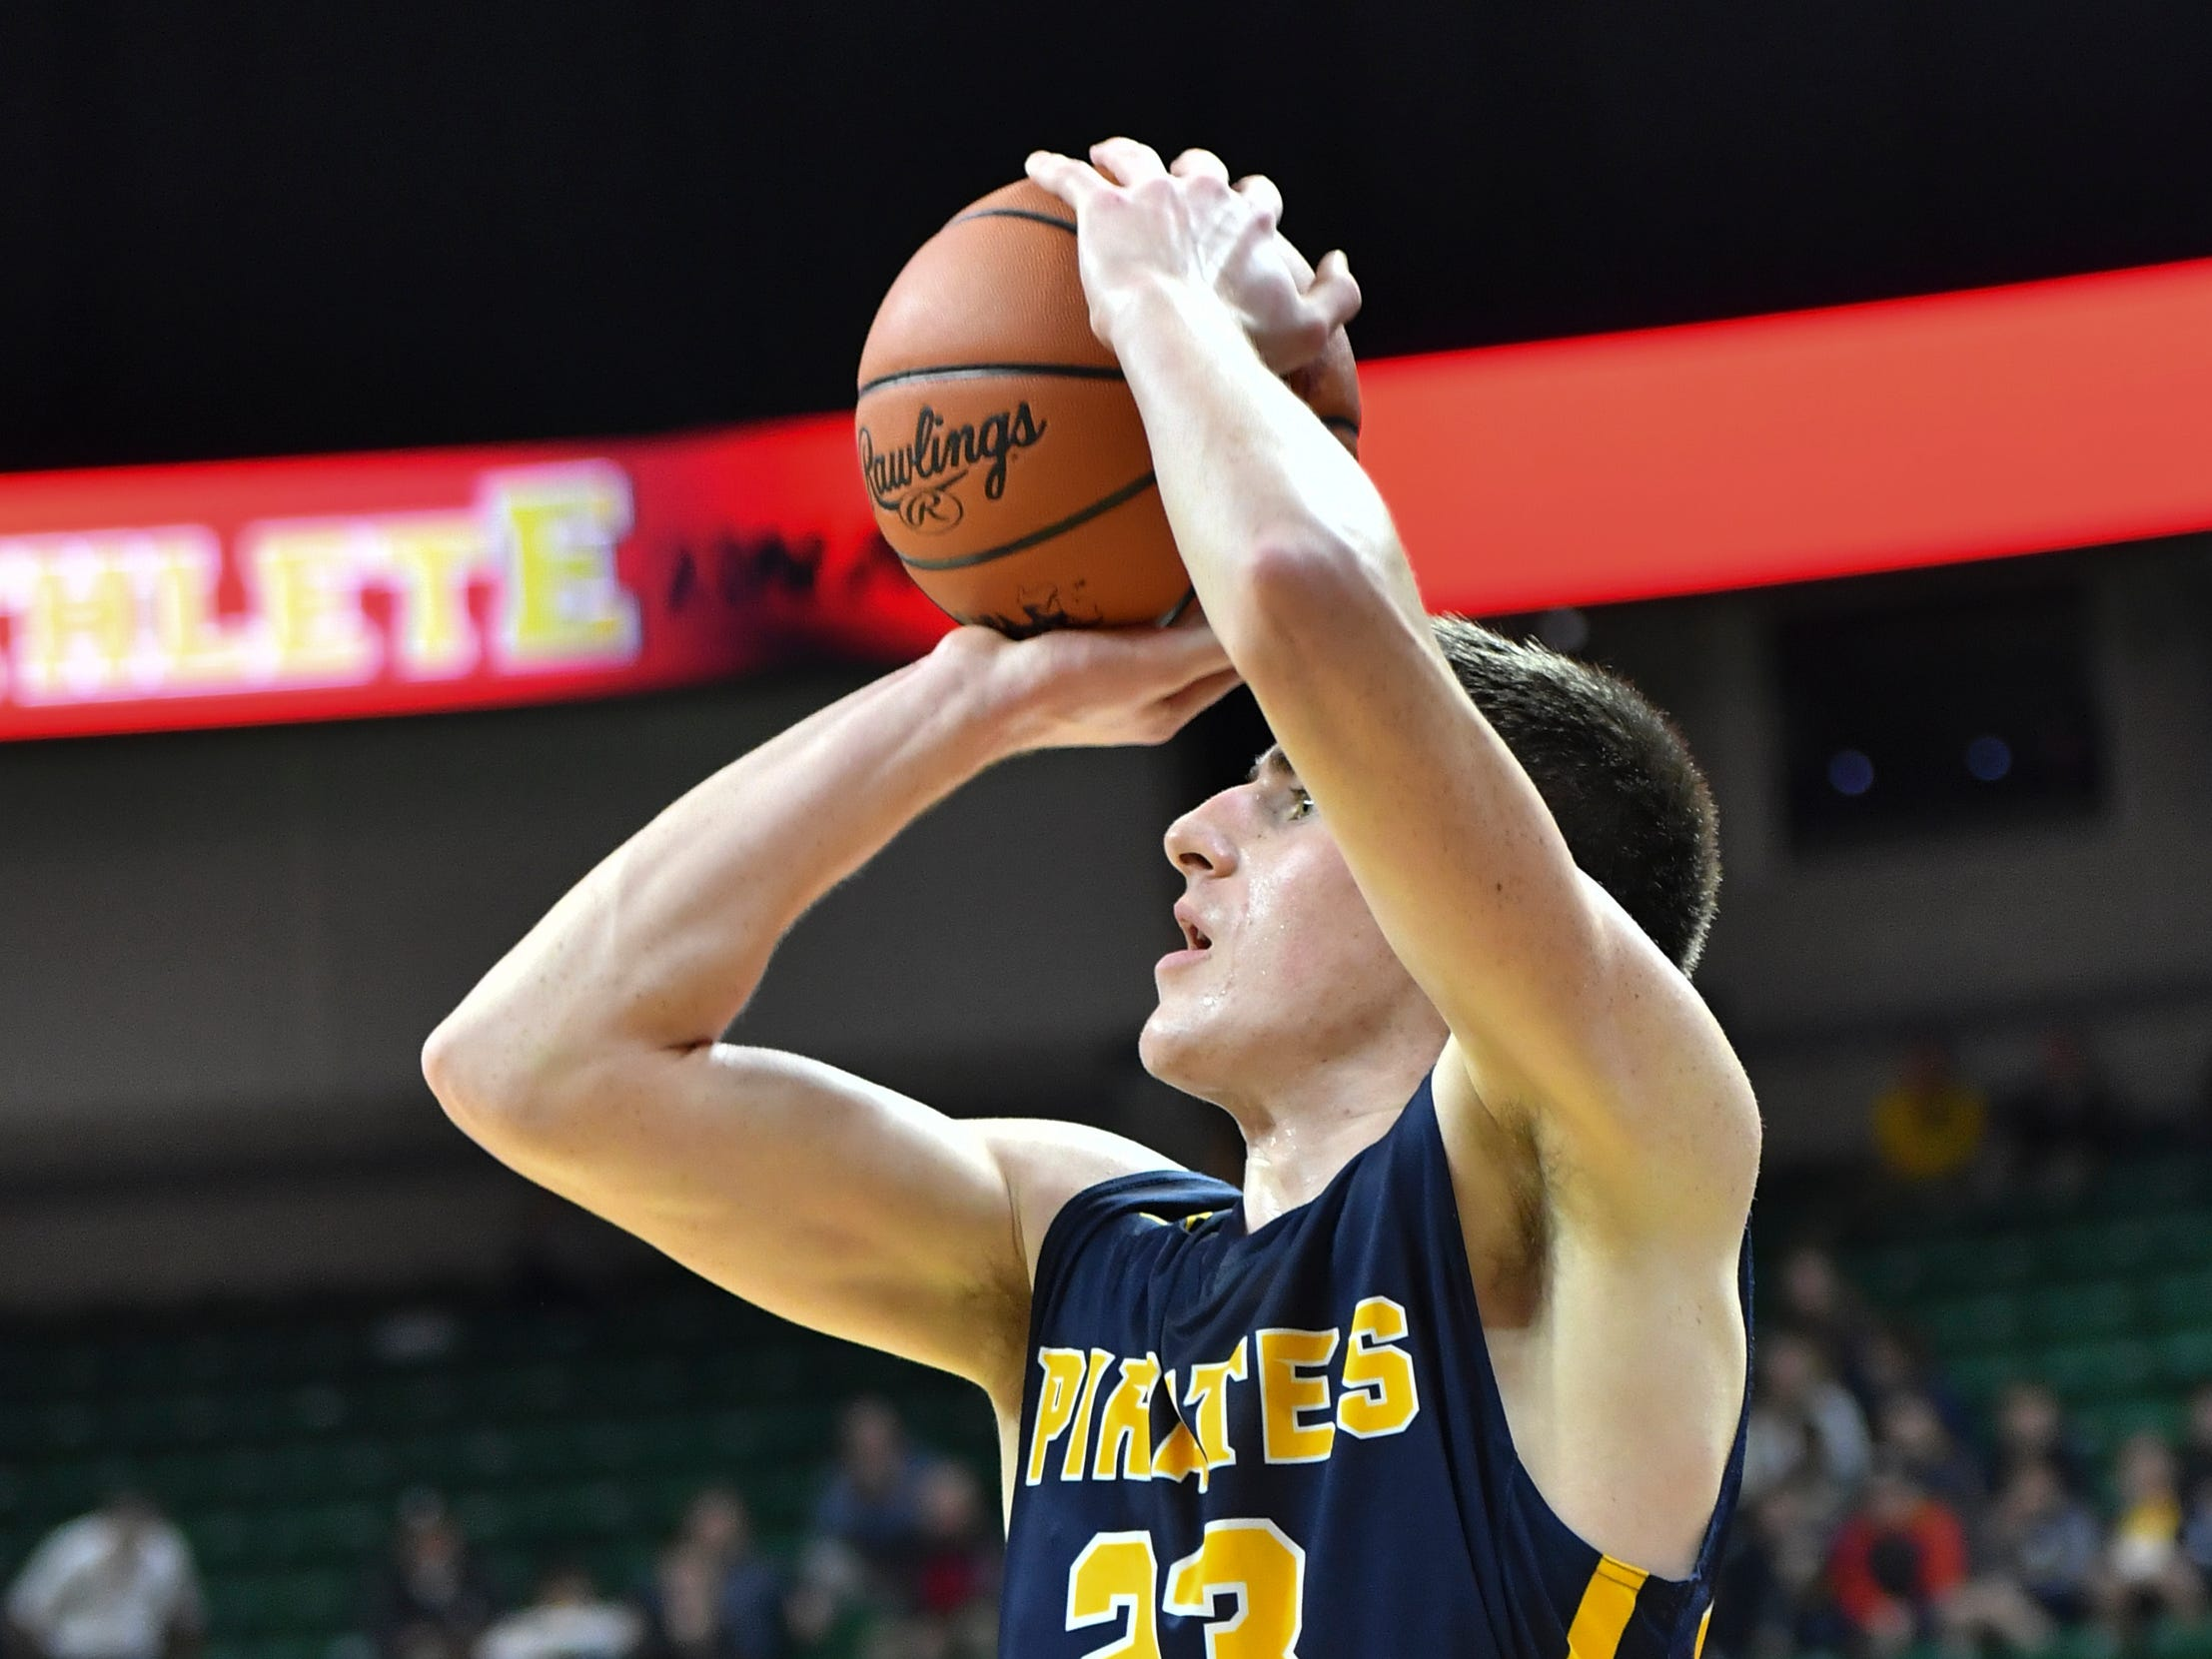 Aaron Bearss of PW connects from three-point land against Erie-Mason, Thursday, March 14, 2019, during the MHSAA Div. 3 state semifinal at the Breslin Center in East Lansing.   P-W earned its berth in the state final beating Erie-Mason 60-45.